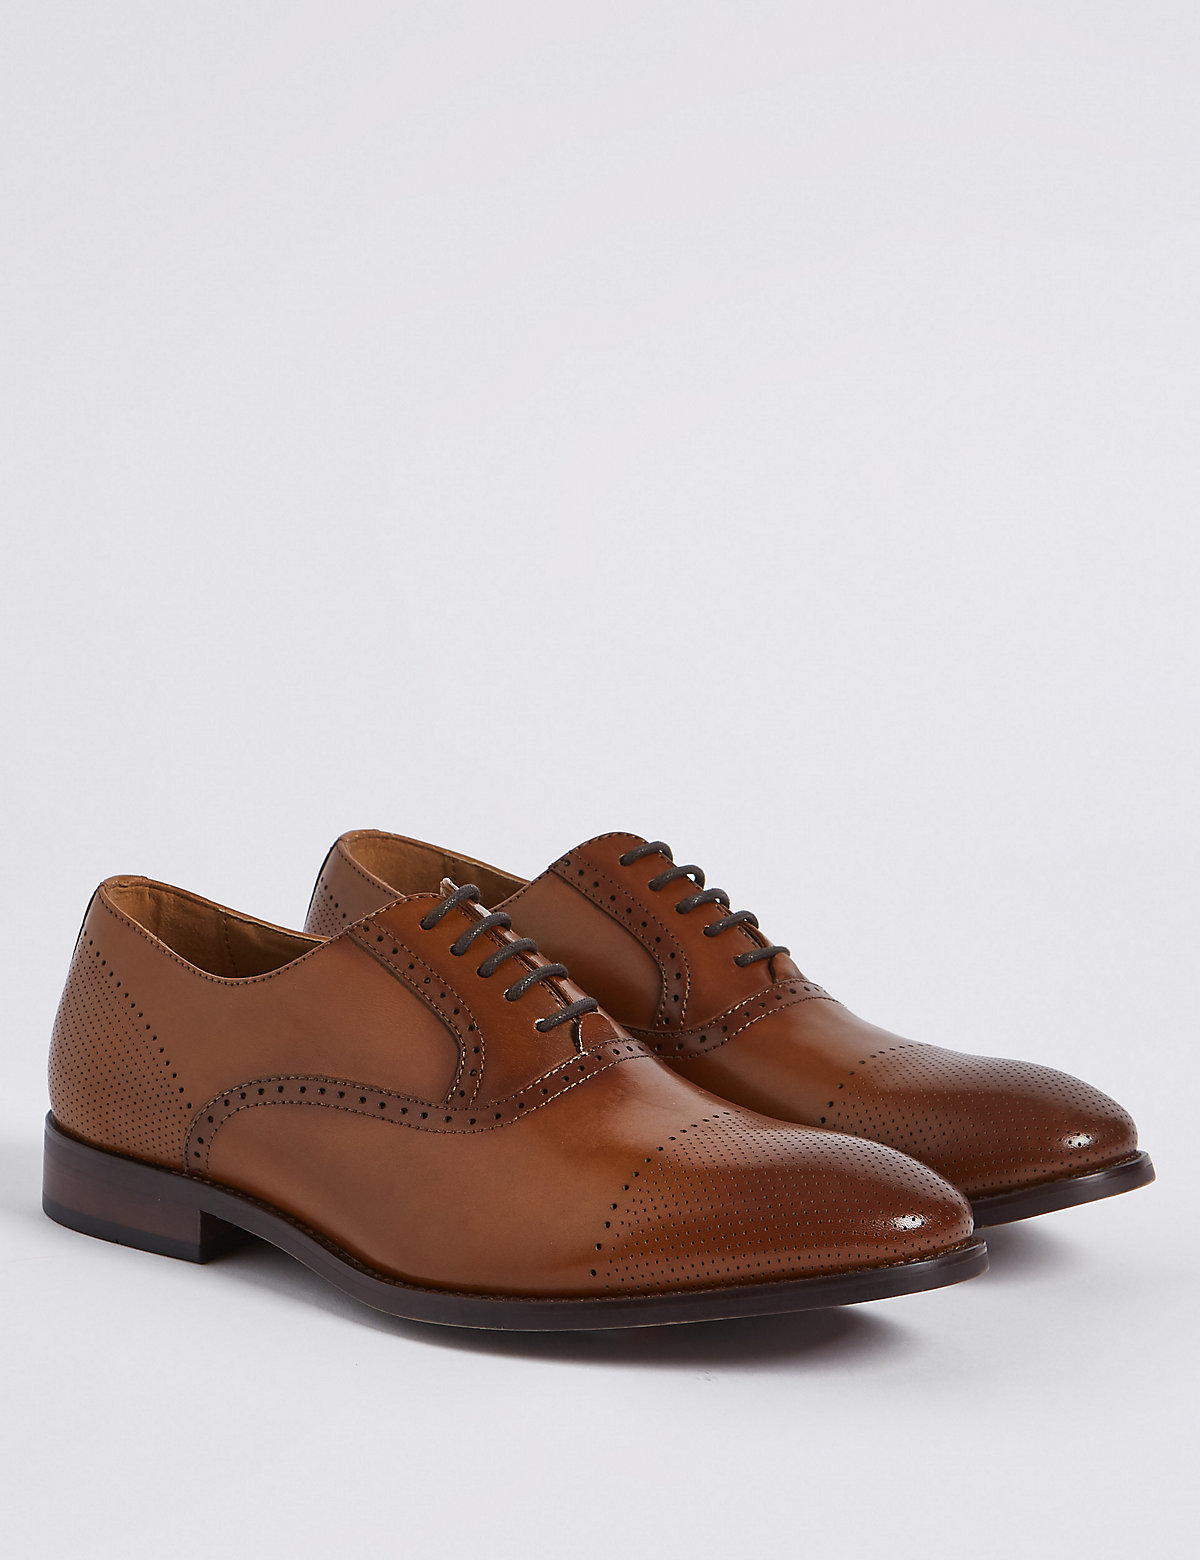 Marks & Spencer Tan Leather Lace-up Oxford Shoes